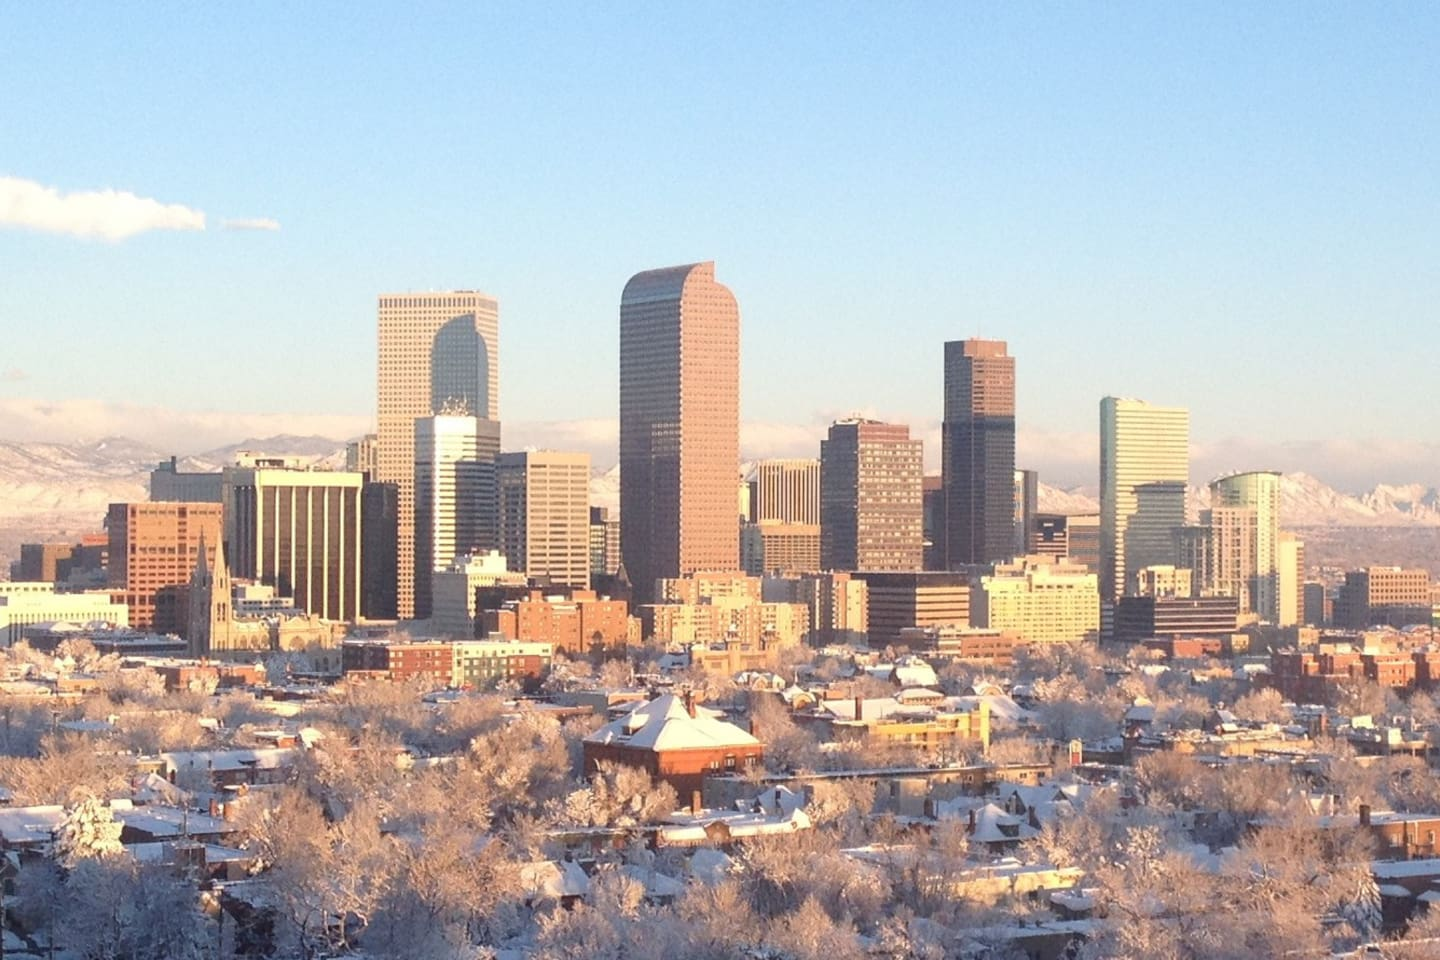 Welcome to the City of Denver! Denver's beautiful skyline with the mountains in the background.